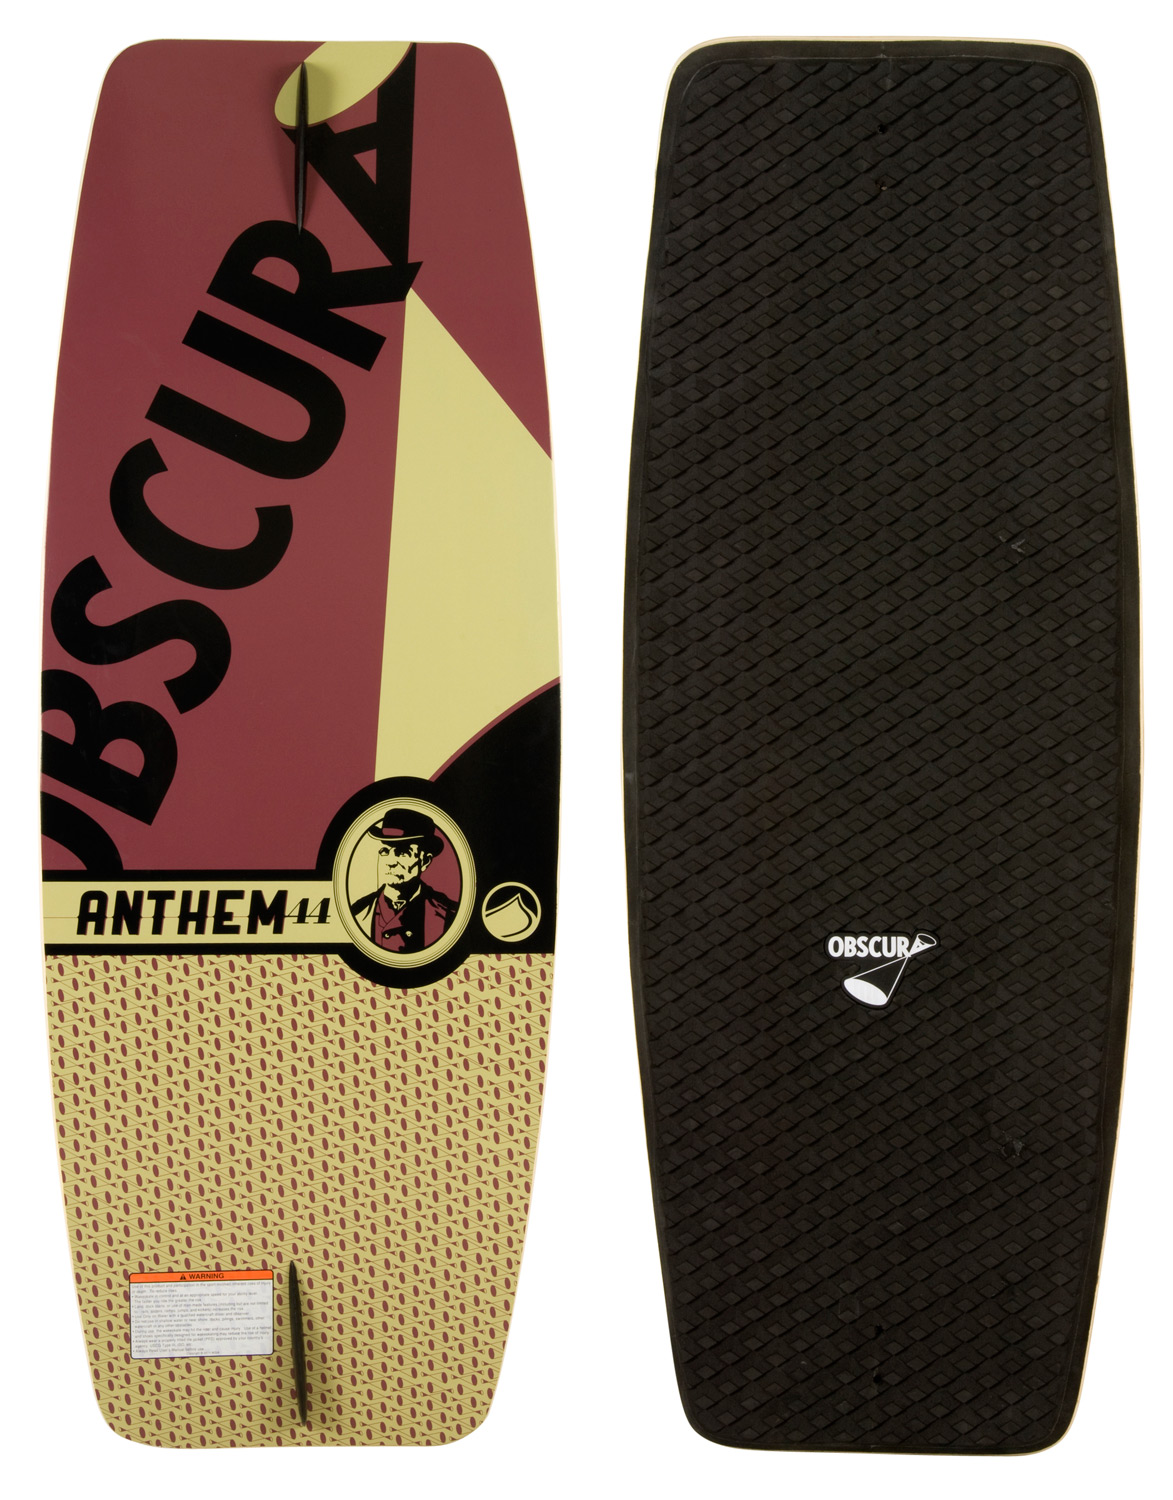 Skateboard The Anthem continues to be a unique stand out in our line, as the EVA molded concave traction pad gives it a progressive feel without the progressive price. The three stage rocker and concave deck will help any rider skate like never before. Slim and lightweight, this board is a comfortable and consistent daily performer for those looking to get more serious about wake skating.Key Features of the Liquid Force Anthem Wakeskate: New Board Outline: For 2013 we updated the outline of the board, to have more midsection and continuous outline shape, for a better edge hold and more consistent feel under your feet. New EVA Deck: Deck comes with applied die cut machined EVA grip that has been redesigned for this year. The grip offers much improved traction and Obscura logo branding. Progressive 3 Stage Rocker: A mixture of aggressive 3 stage and continuous rocker, this rocker profile allows the board to stay under your feet as you edge or leave the wake. Single concave: The progressive 3 stage rocker is complimented with a single concave throughout the board that helps the board track even truer, with a fin or without, when you are on edge. Wood Construction: Decks that are pressed one at a time and individually CNC cut to a shape that will allow any rider, at any level to ride. Once the board is machined it goes thru a varnishing process twice to ensure a quality seal. Constant Rail Edge: The rail of the board is soft throughout. This allows the board to have a forgiving feel. Skate Fin: Comes standard with two 1.0 skate fins - $97.95